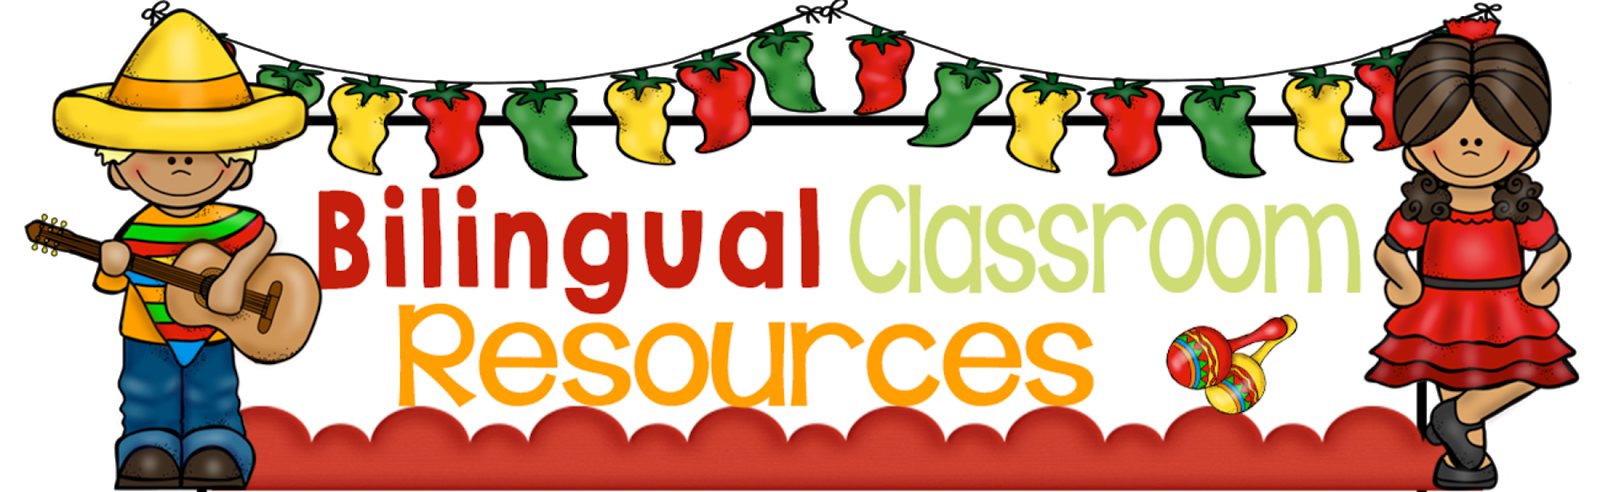 Bilingual Classroom Resources